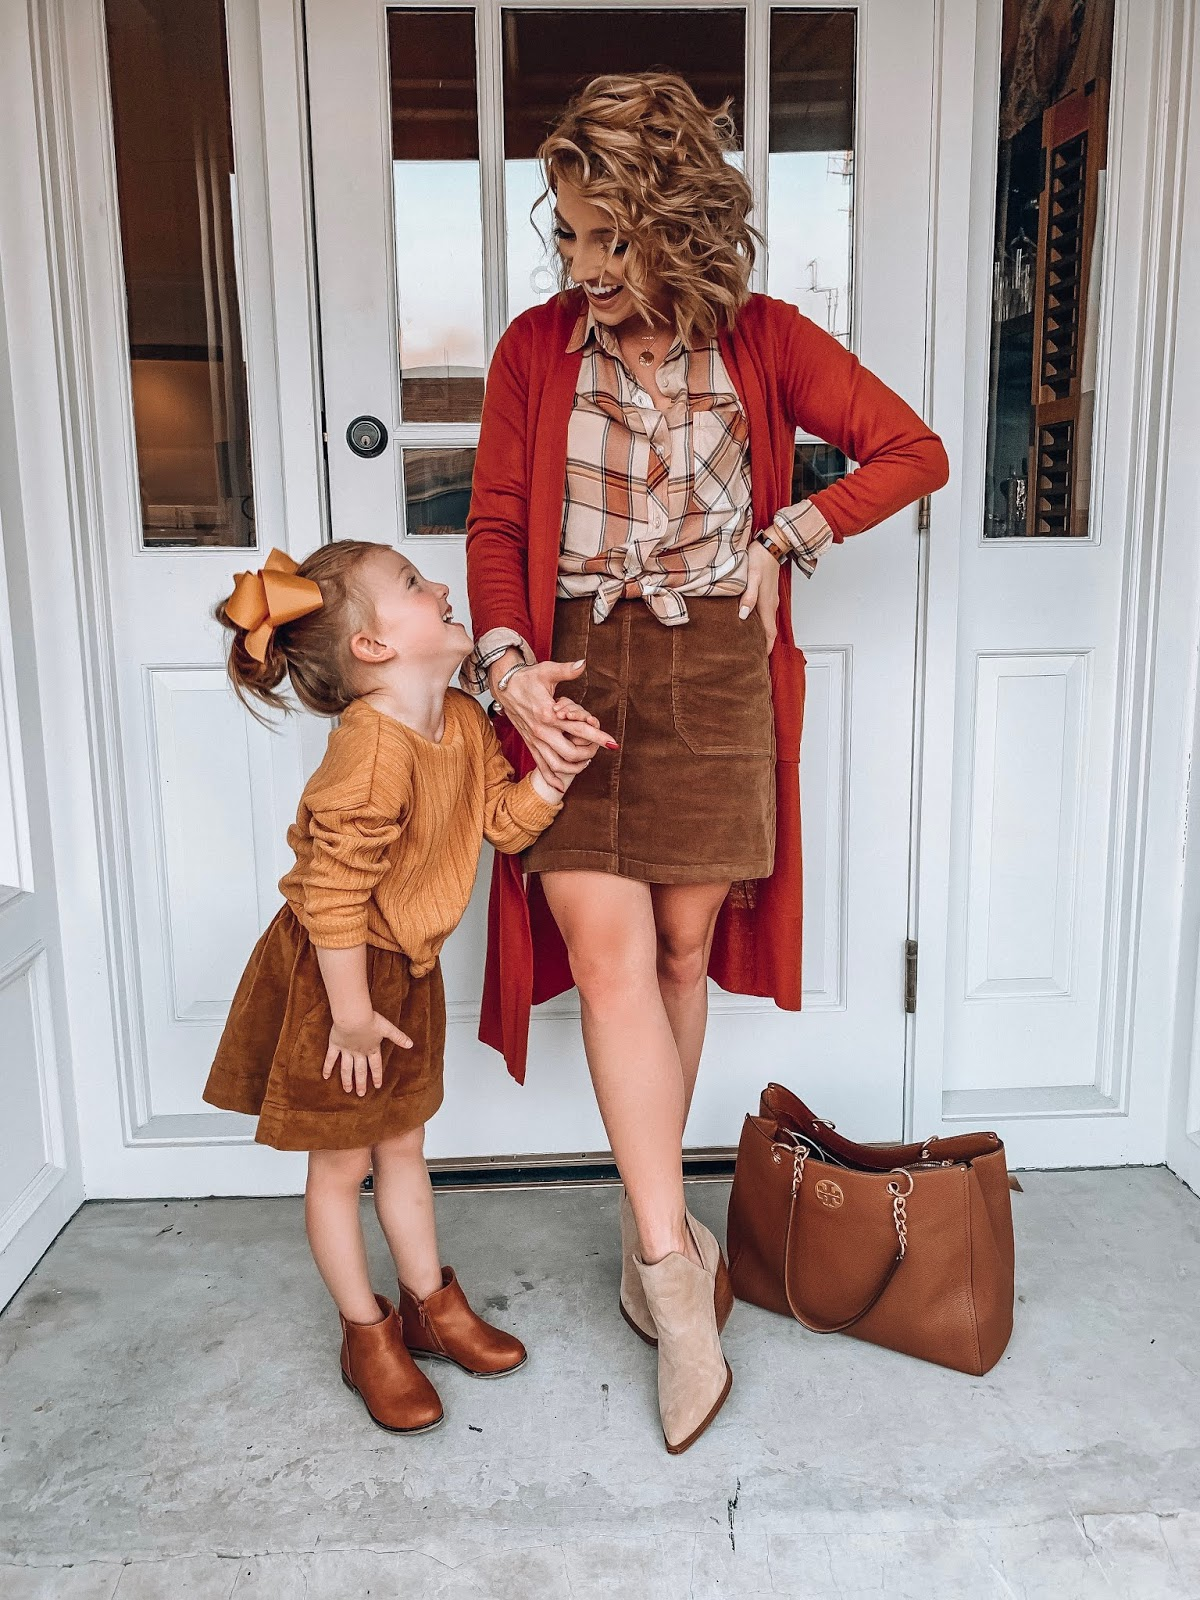 Mommy and me fall style - Brown Cord Skirts - The Perfect Plaid Button Down With Longline Cardigan (both under $30) & Cord Skirt - Something Delightful Blog #fallstyle #targetstyle #fallfashion #affordablestyle